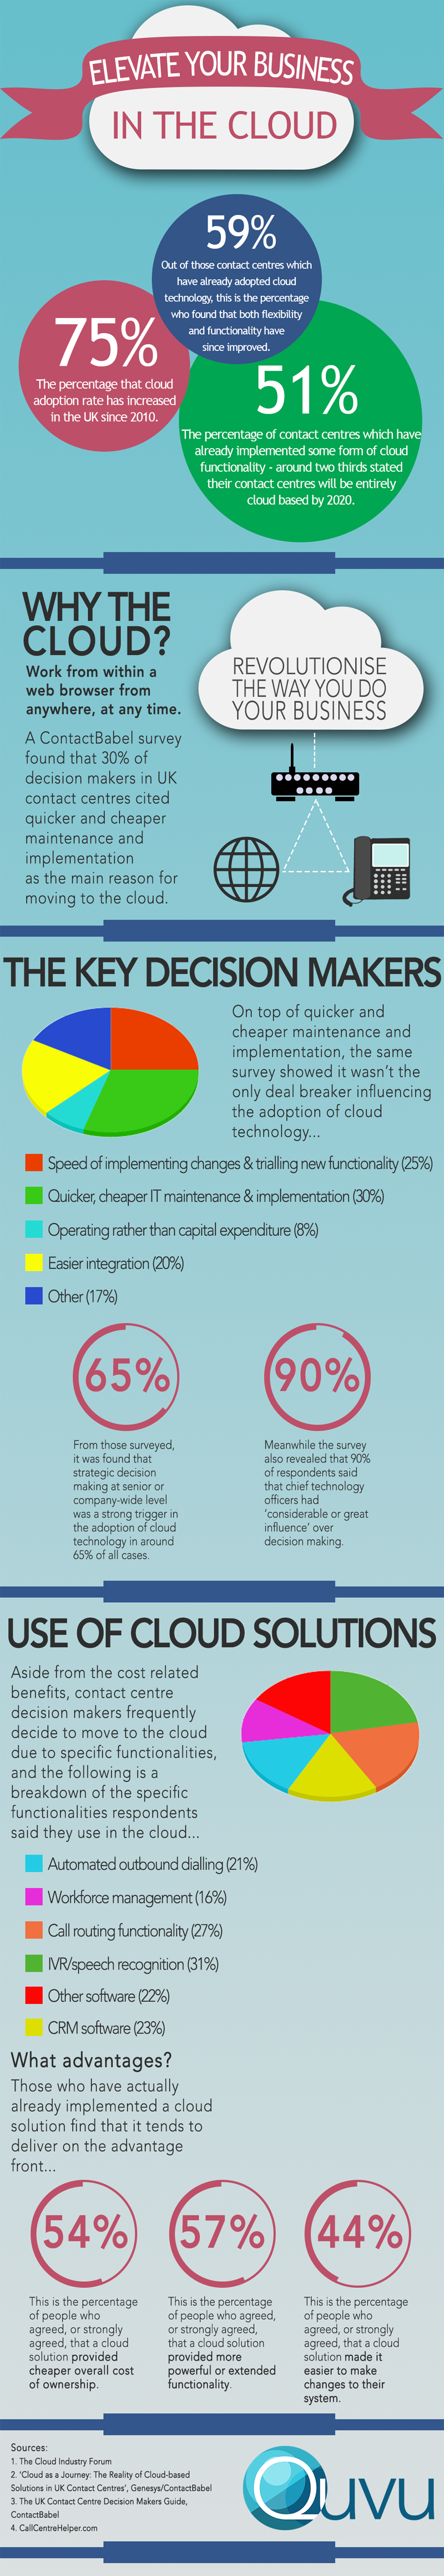 Elevate your business in the cloud infographic2